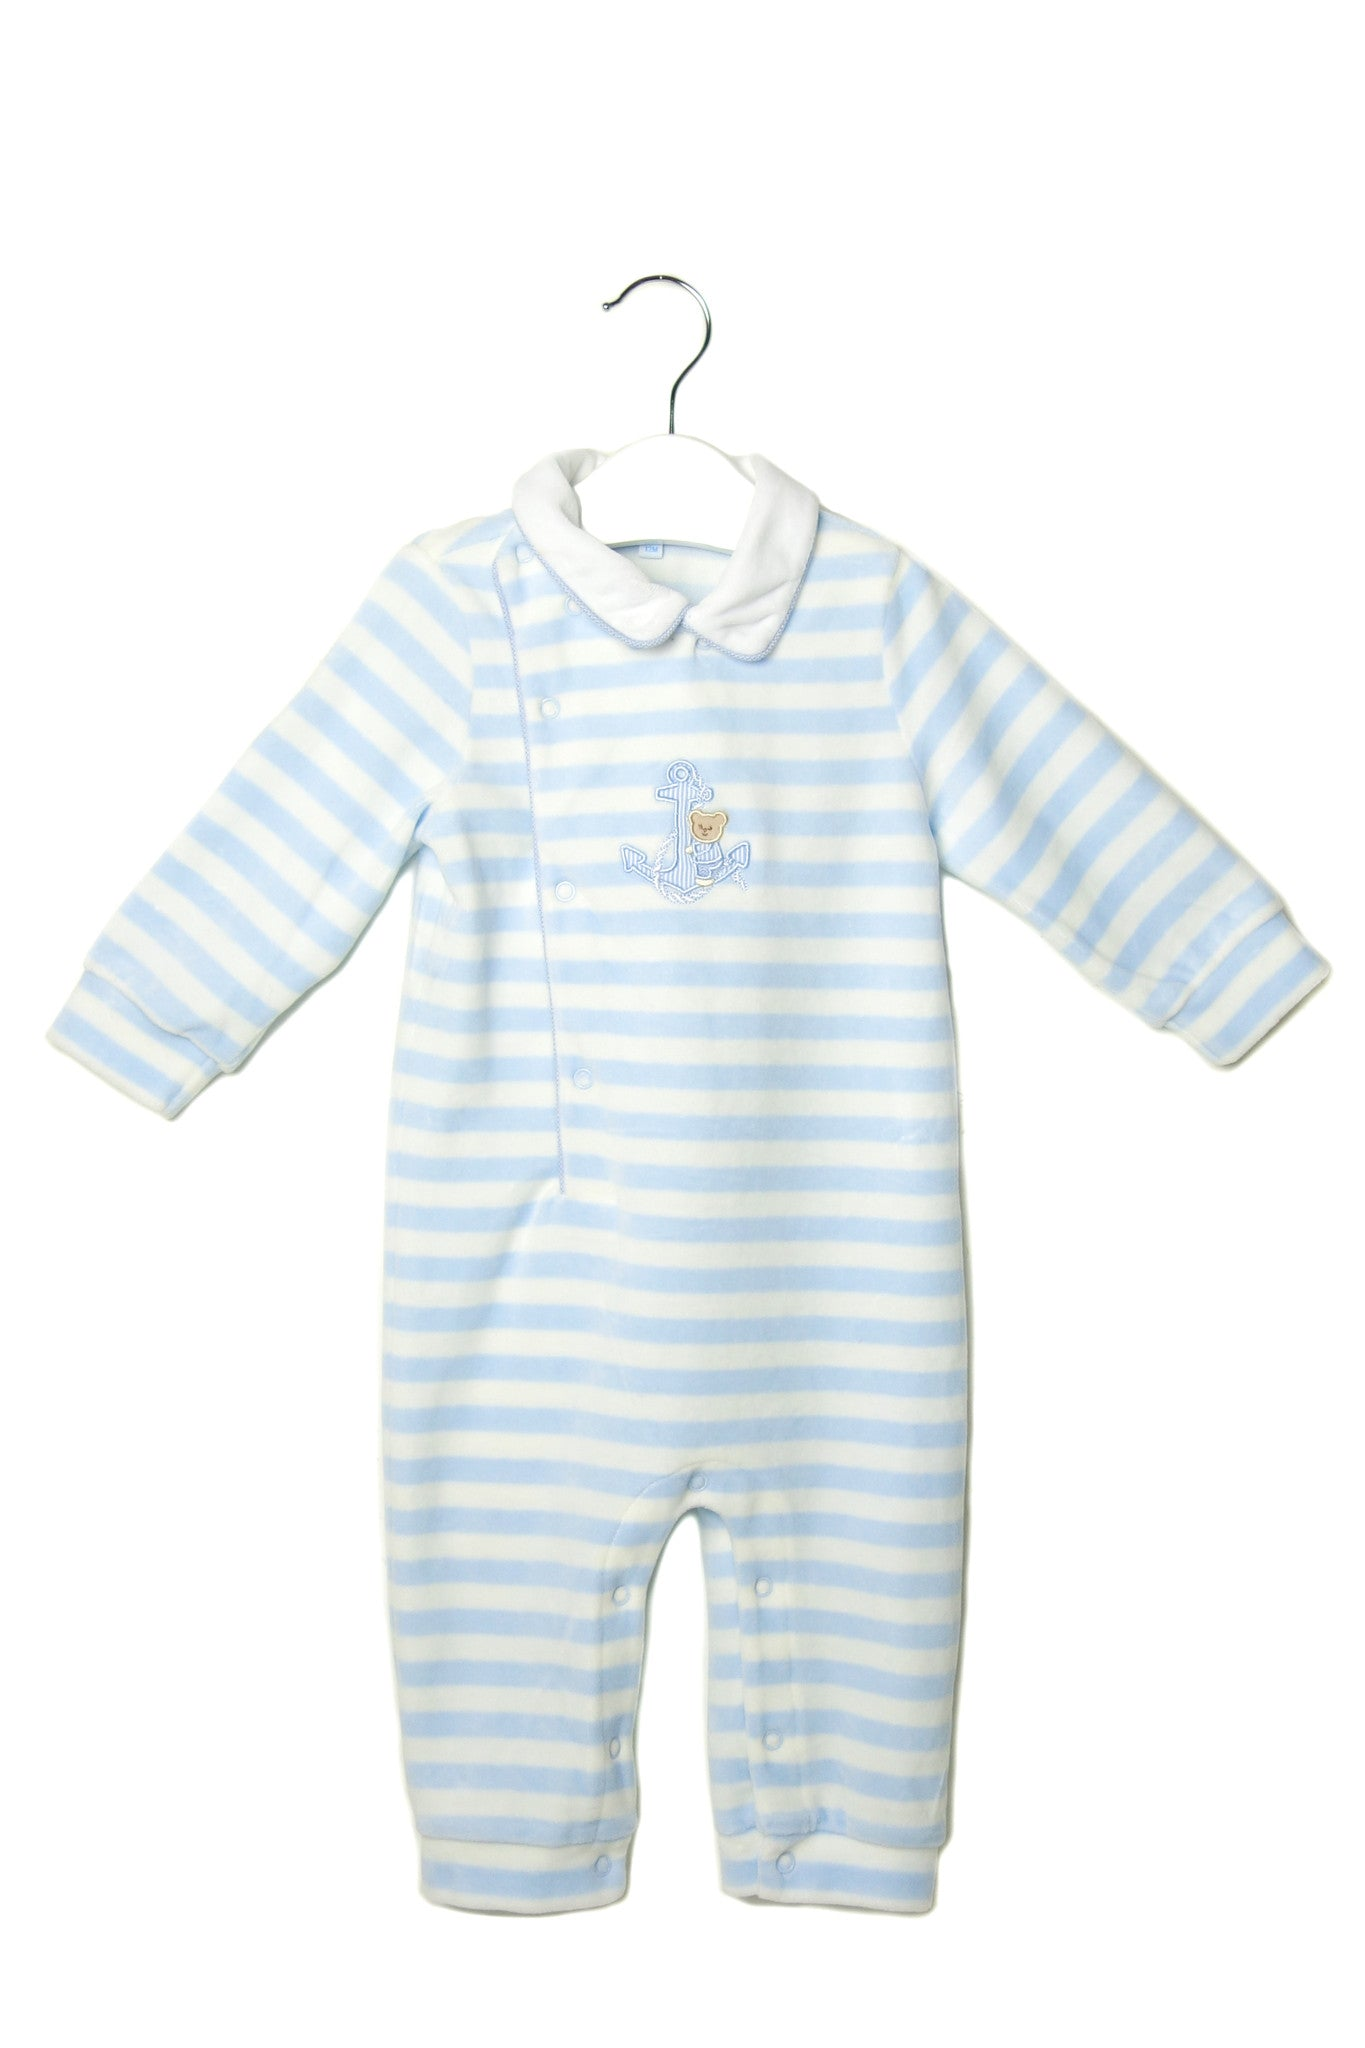 10002089 Nicholas & Bears Baby~Jumpsuit 12M at Retykle